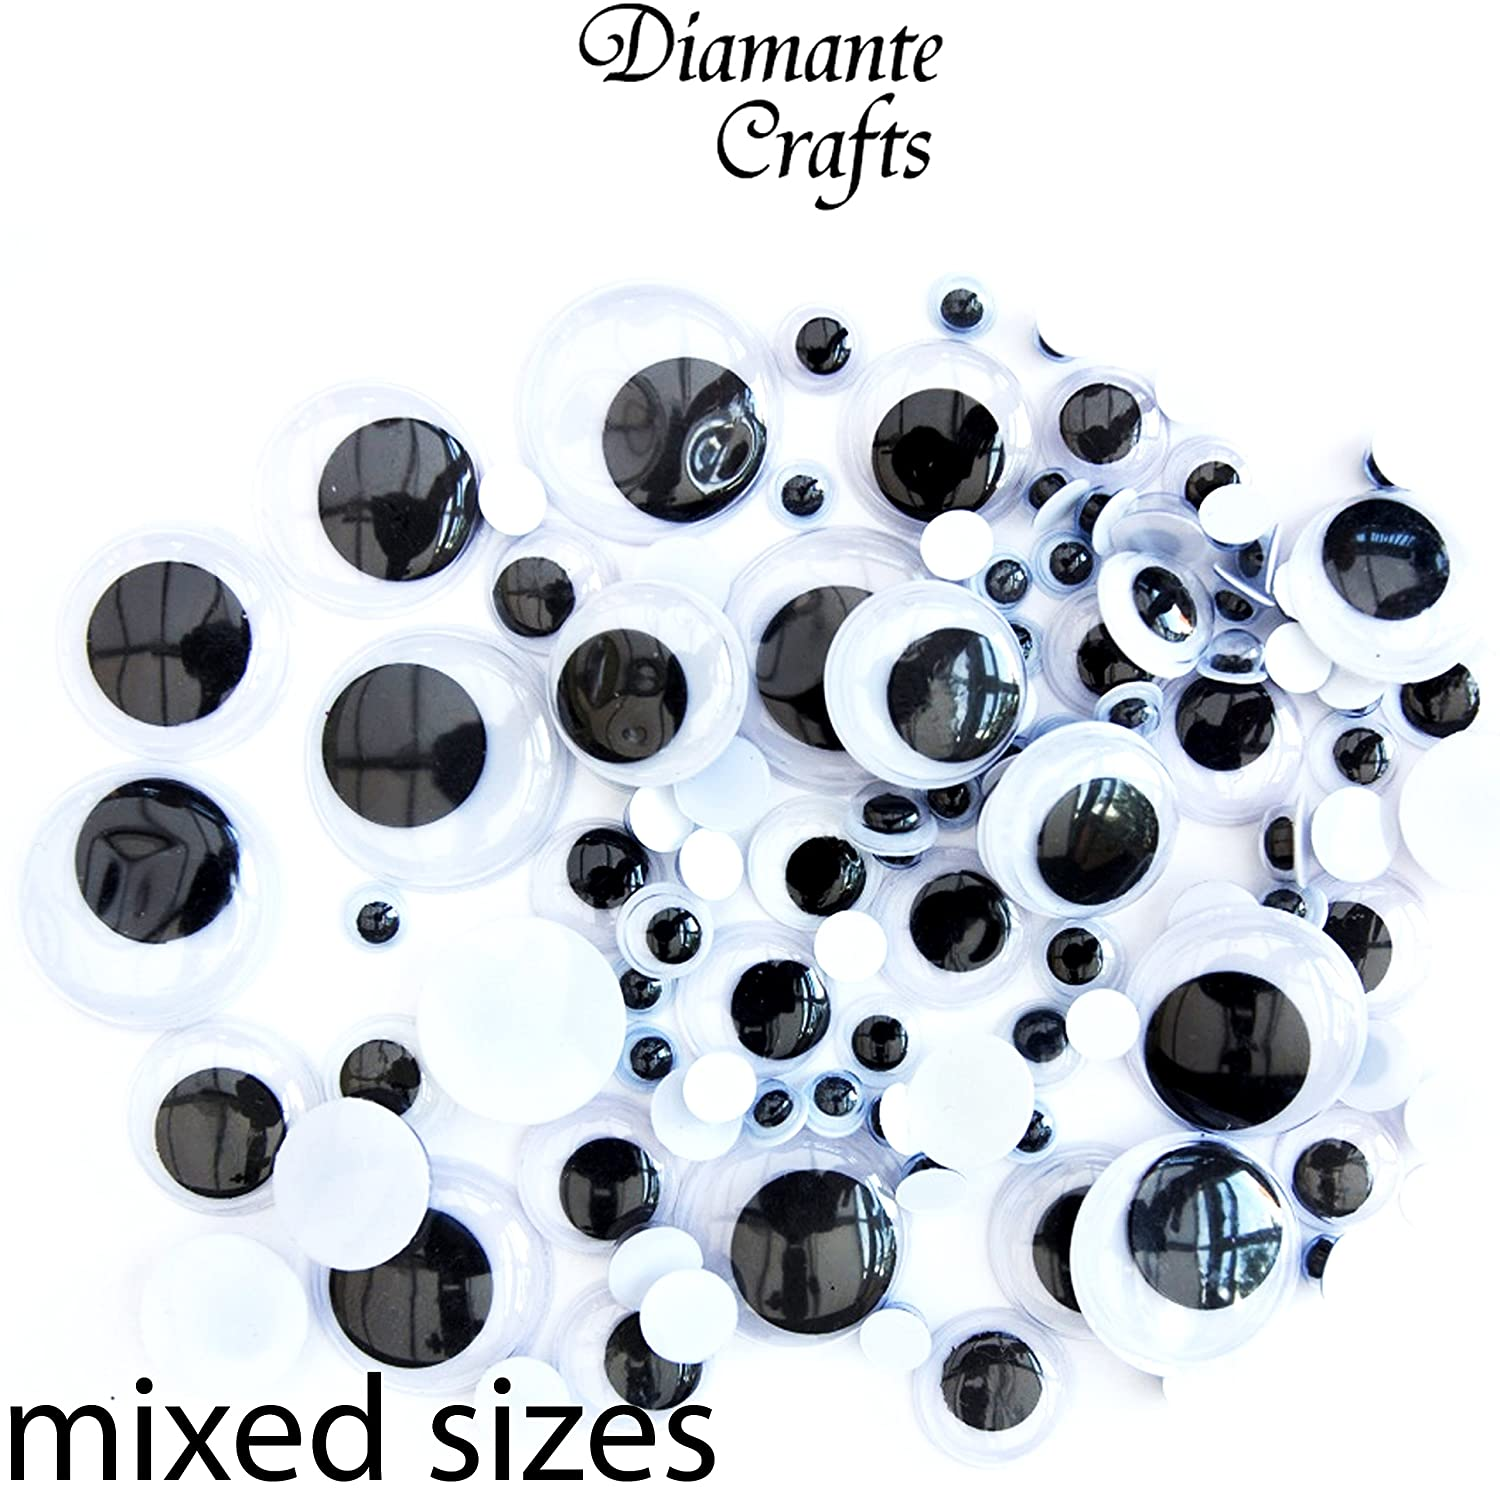 114 pcs Mixed Size Pack Googly Eyes Wiggle Woobly Craft Embellishment Google Mixed Sizes 5mm 7mm 10mm 12mm 15mm 18mm 20mm Diamante Crafts